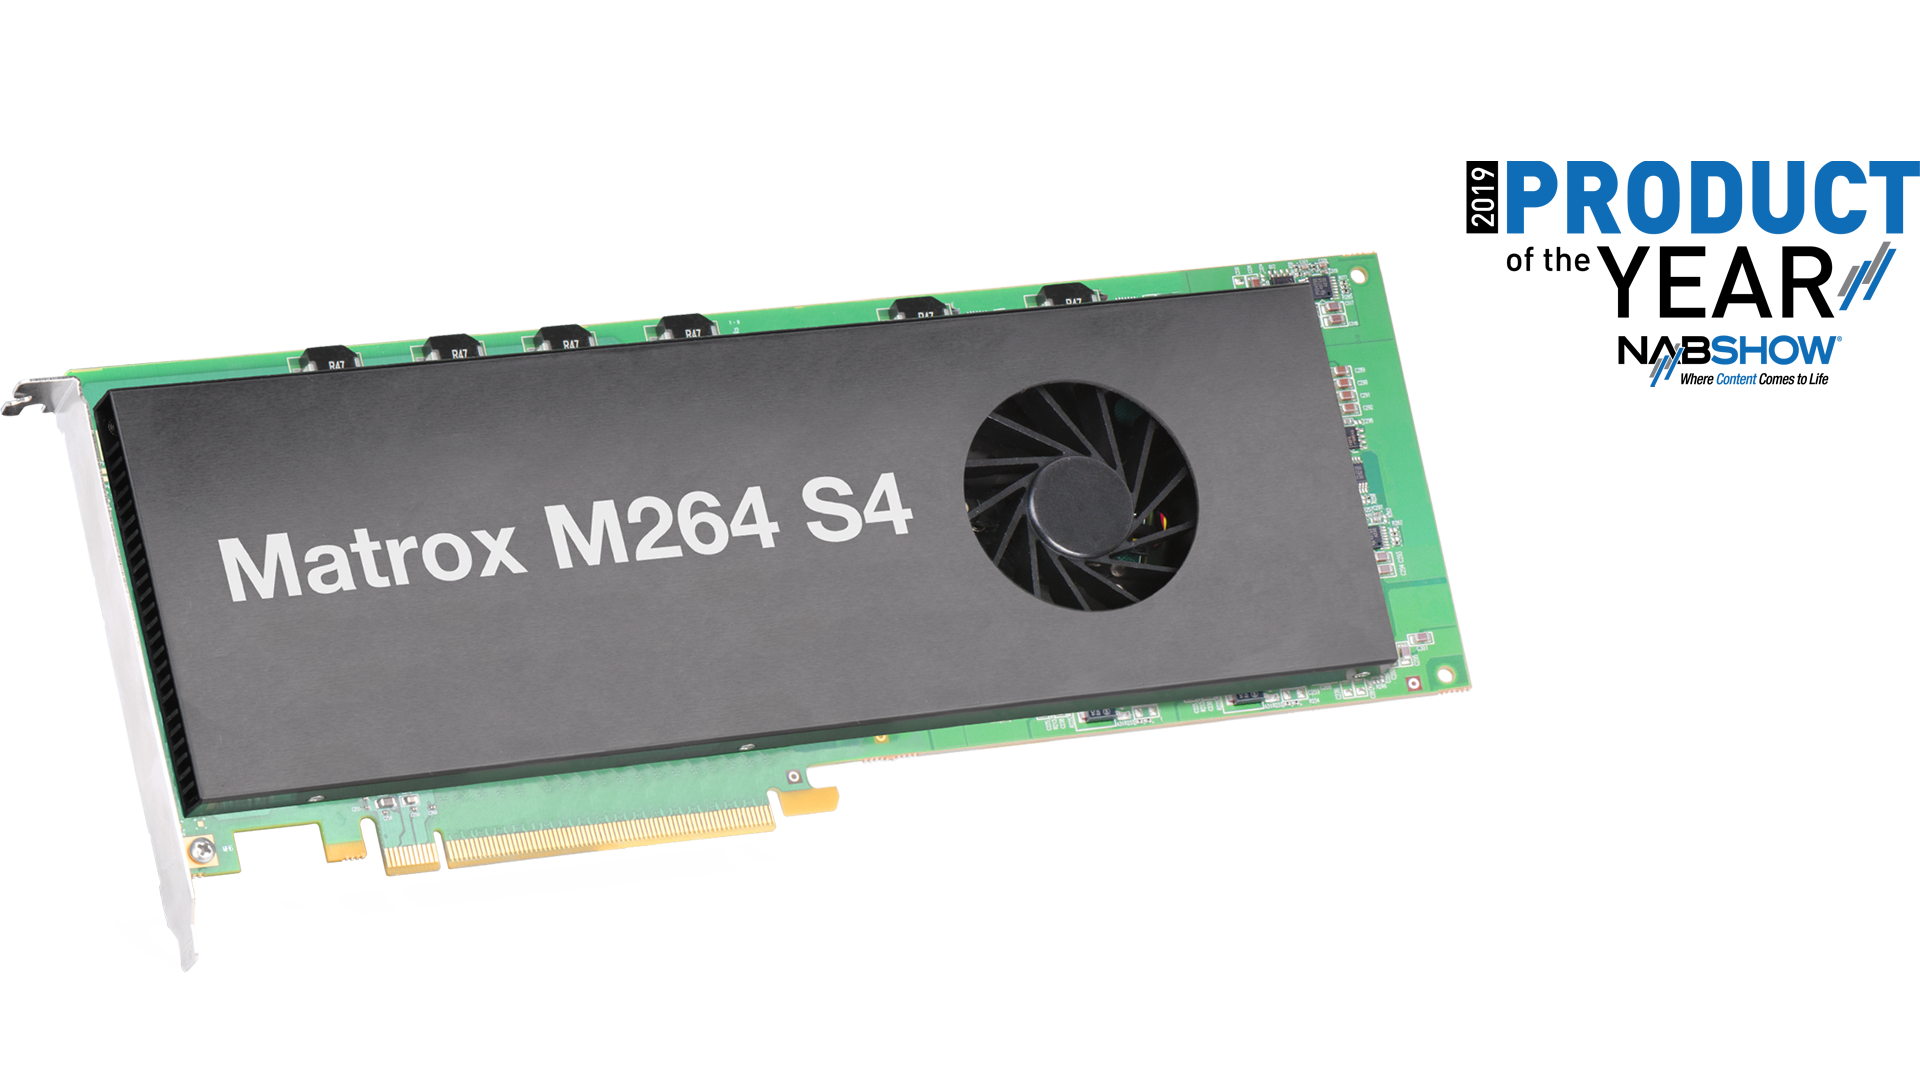 Matrox M264 S4 Hardware Codec Card Wins Product of the Year at NAB Show 2019